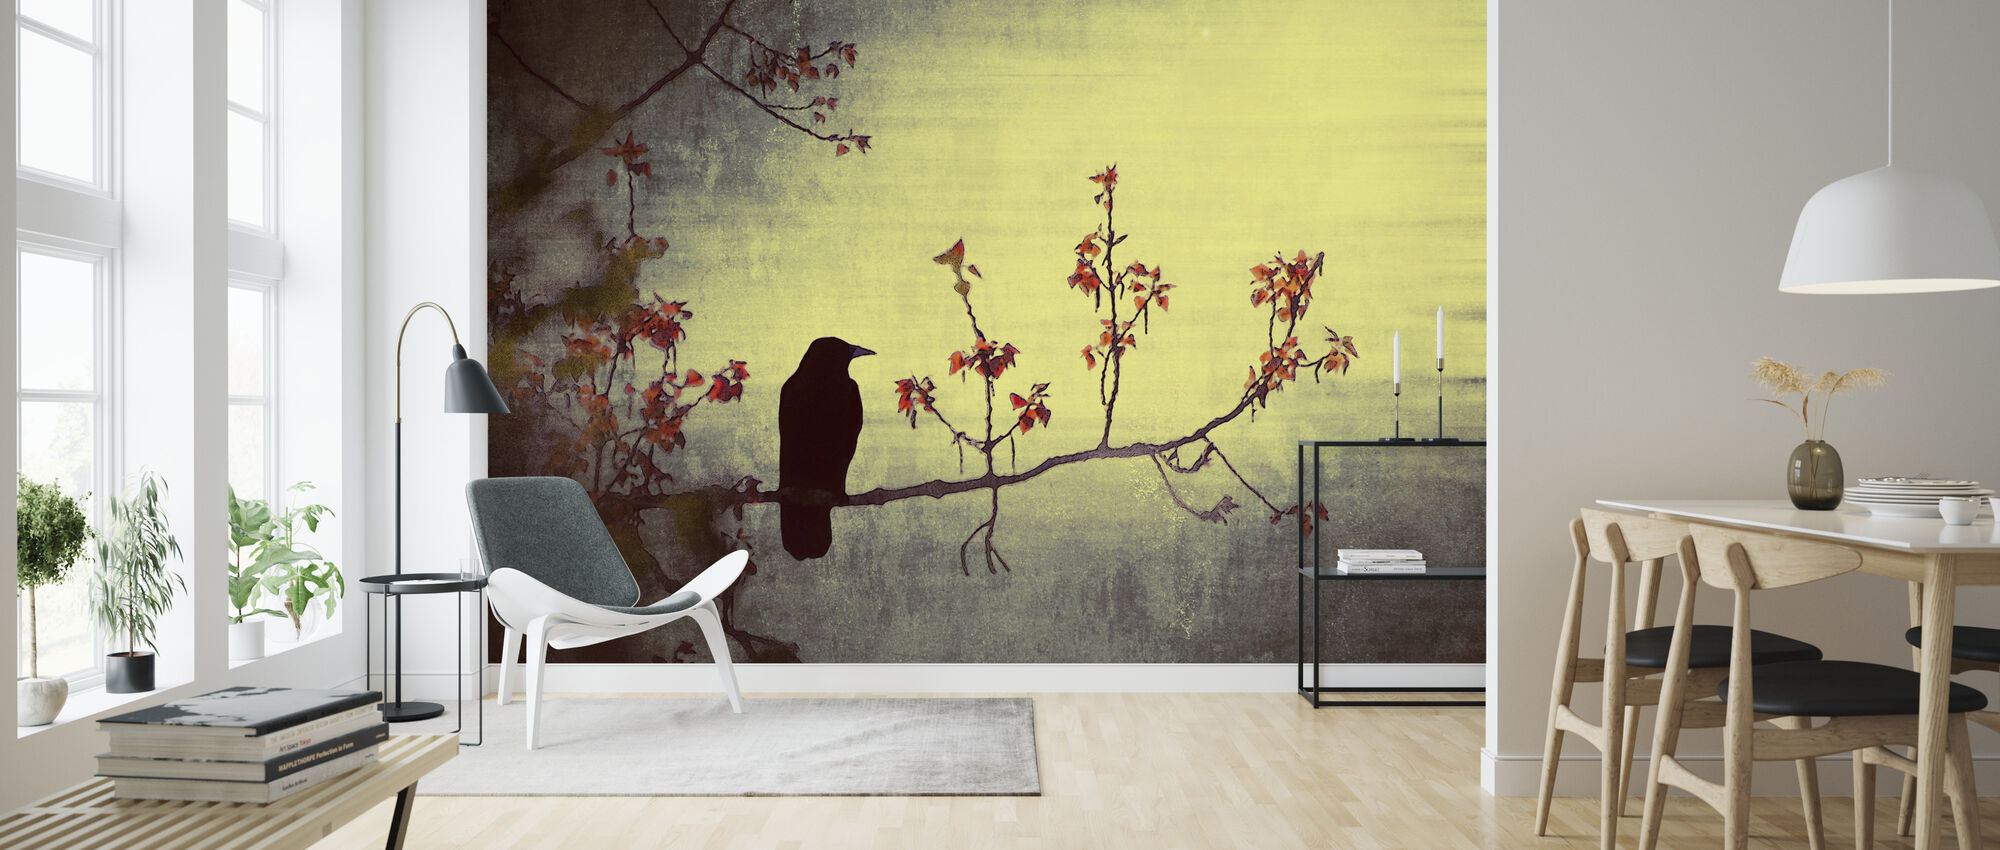 Crow on Flowering Branch - Wallpaper - Living Room